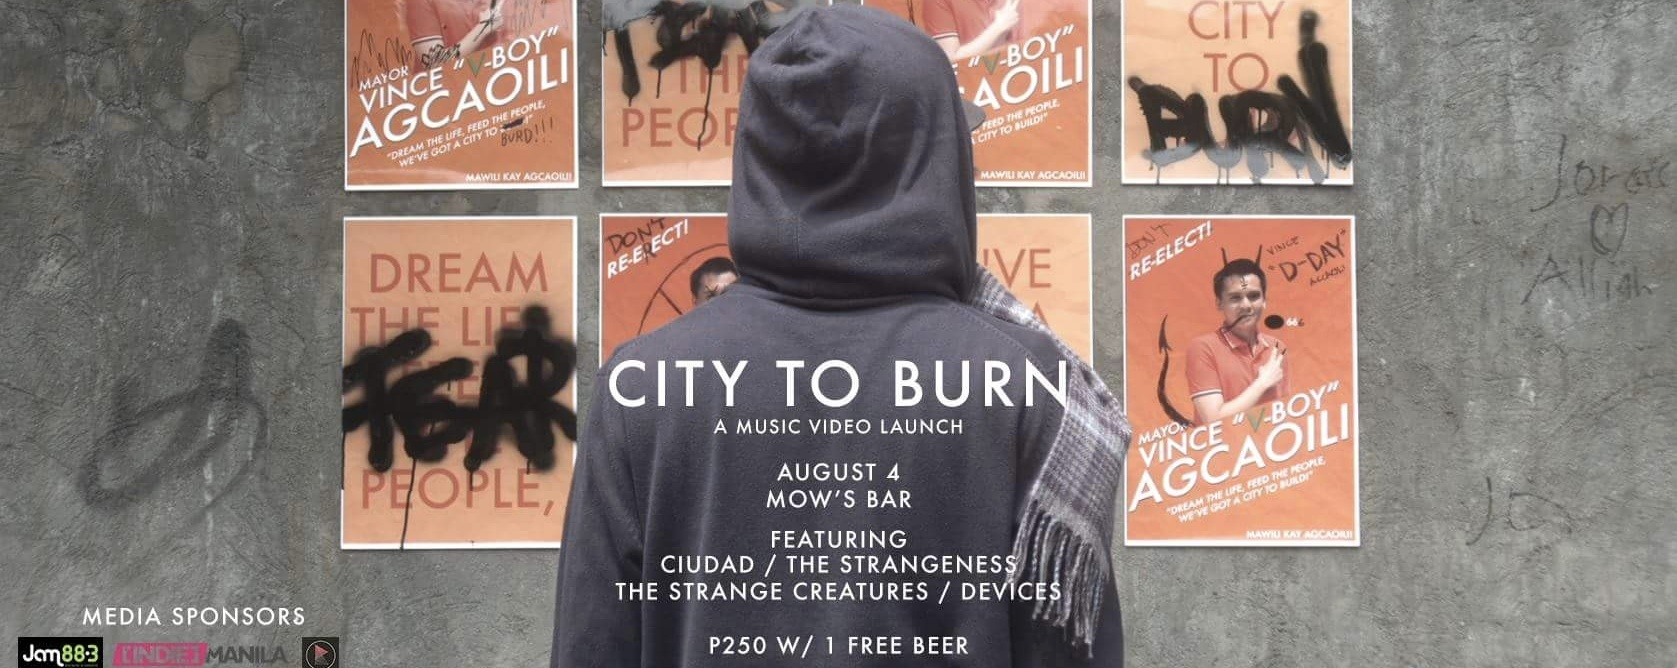 """At The Moment's """"City to Burn"""" MV Launch"""